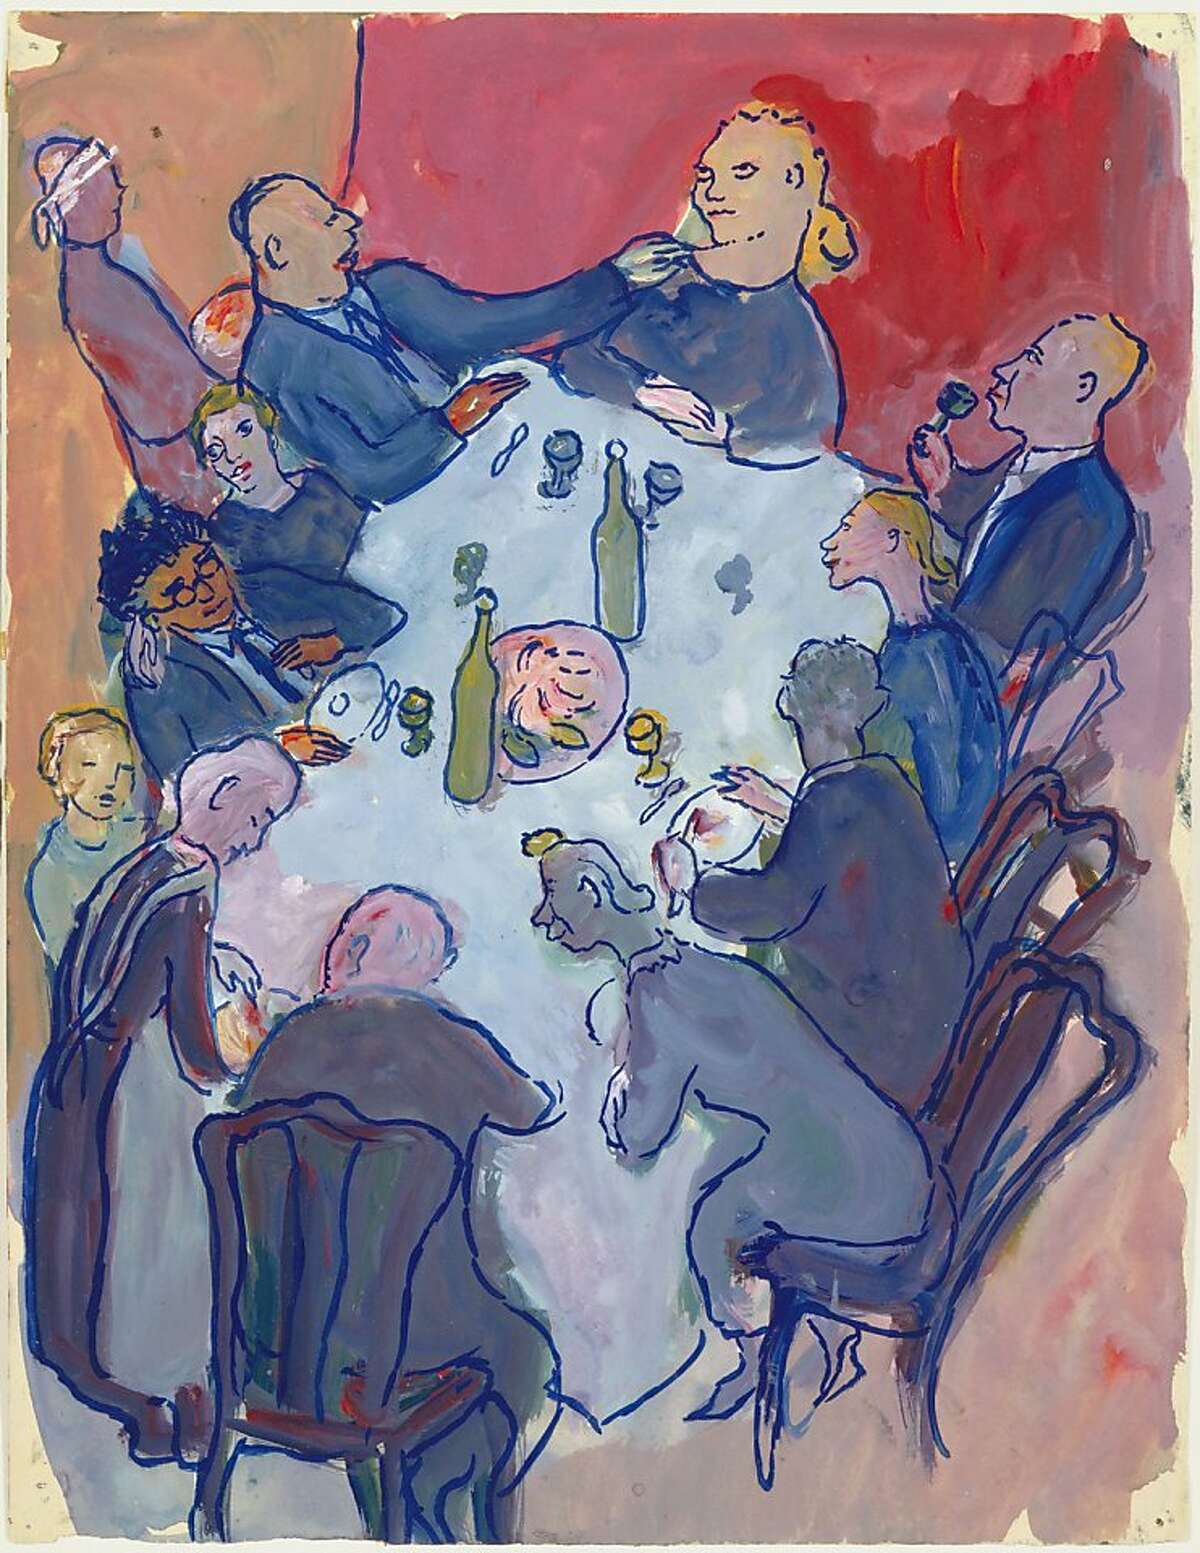 Charlotte Salomon, Gouache from Life? or Theatre?, 1940-1942, Villefranche, France. Collection Jewish Historical Museum, Amsterdam.